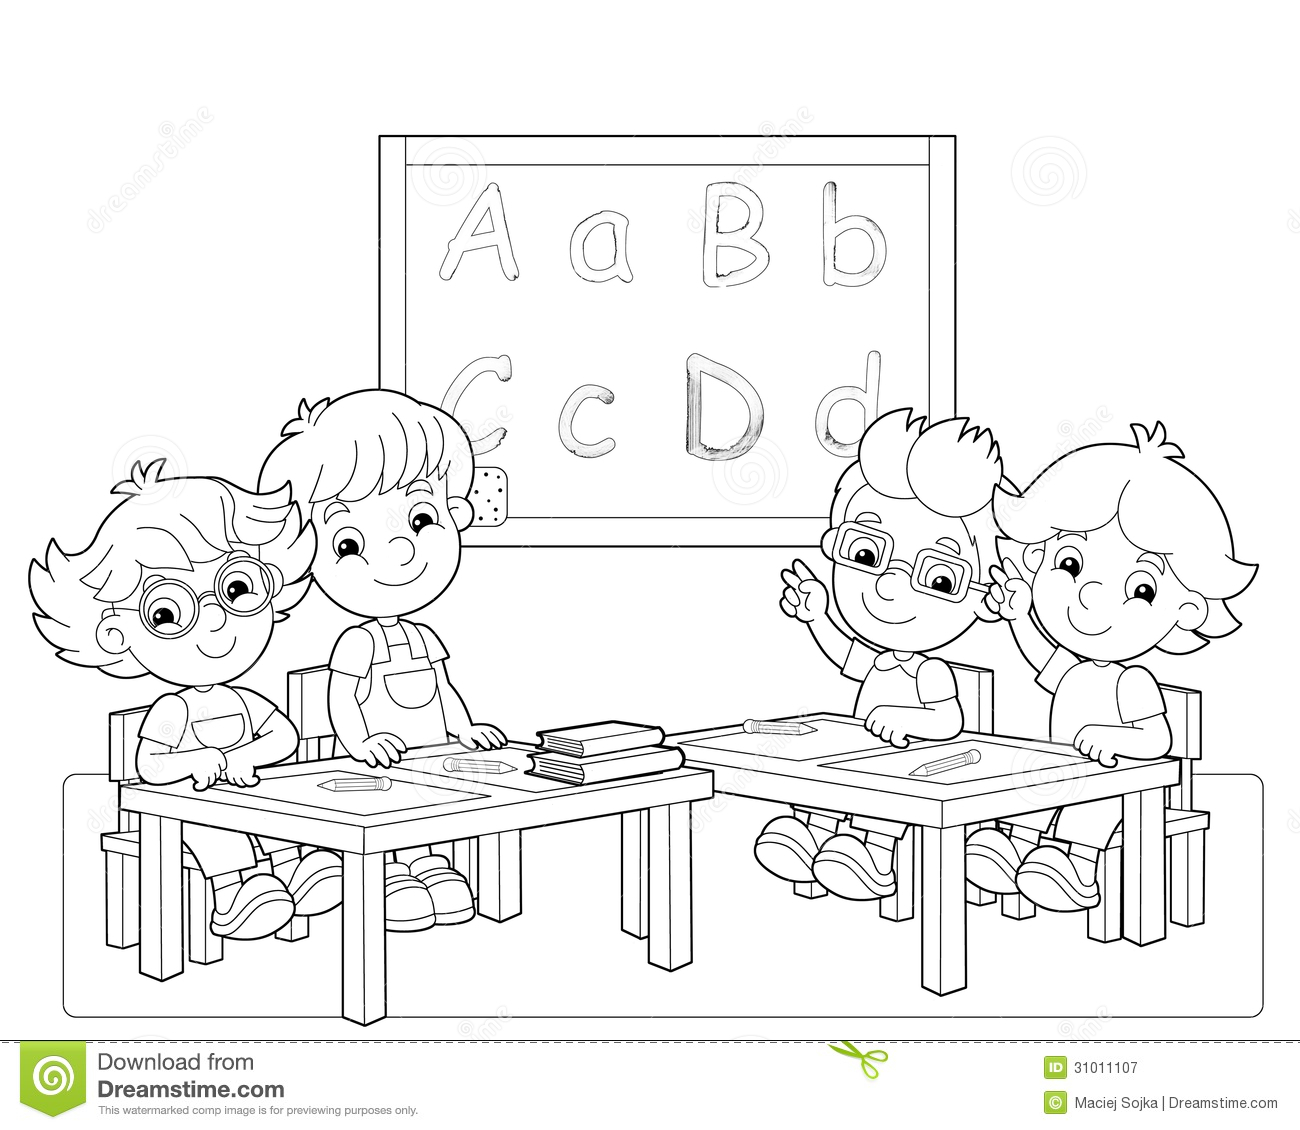 the page with exercises for kids coloring book illustration - Coloring Pictures Of Kids